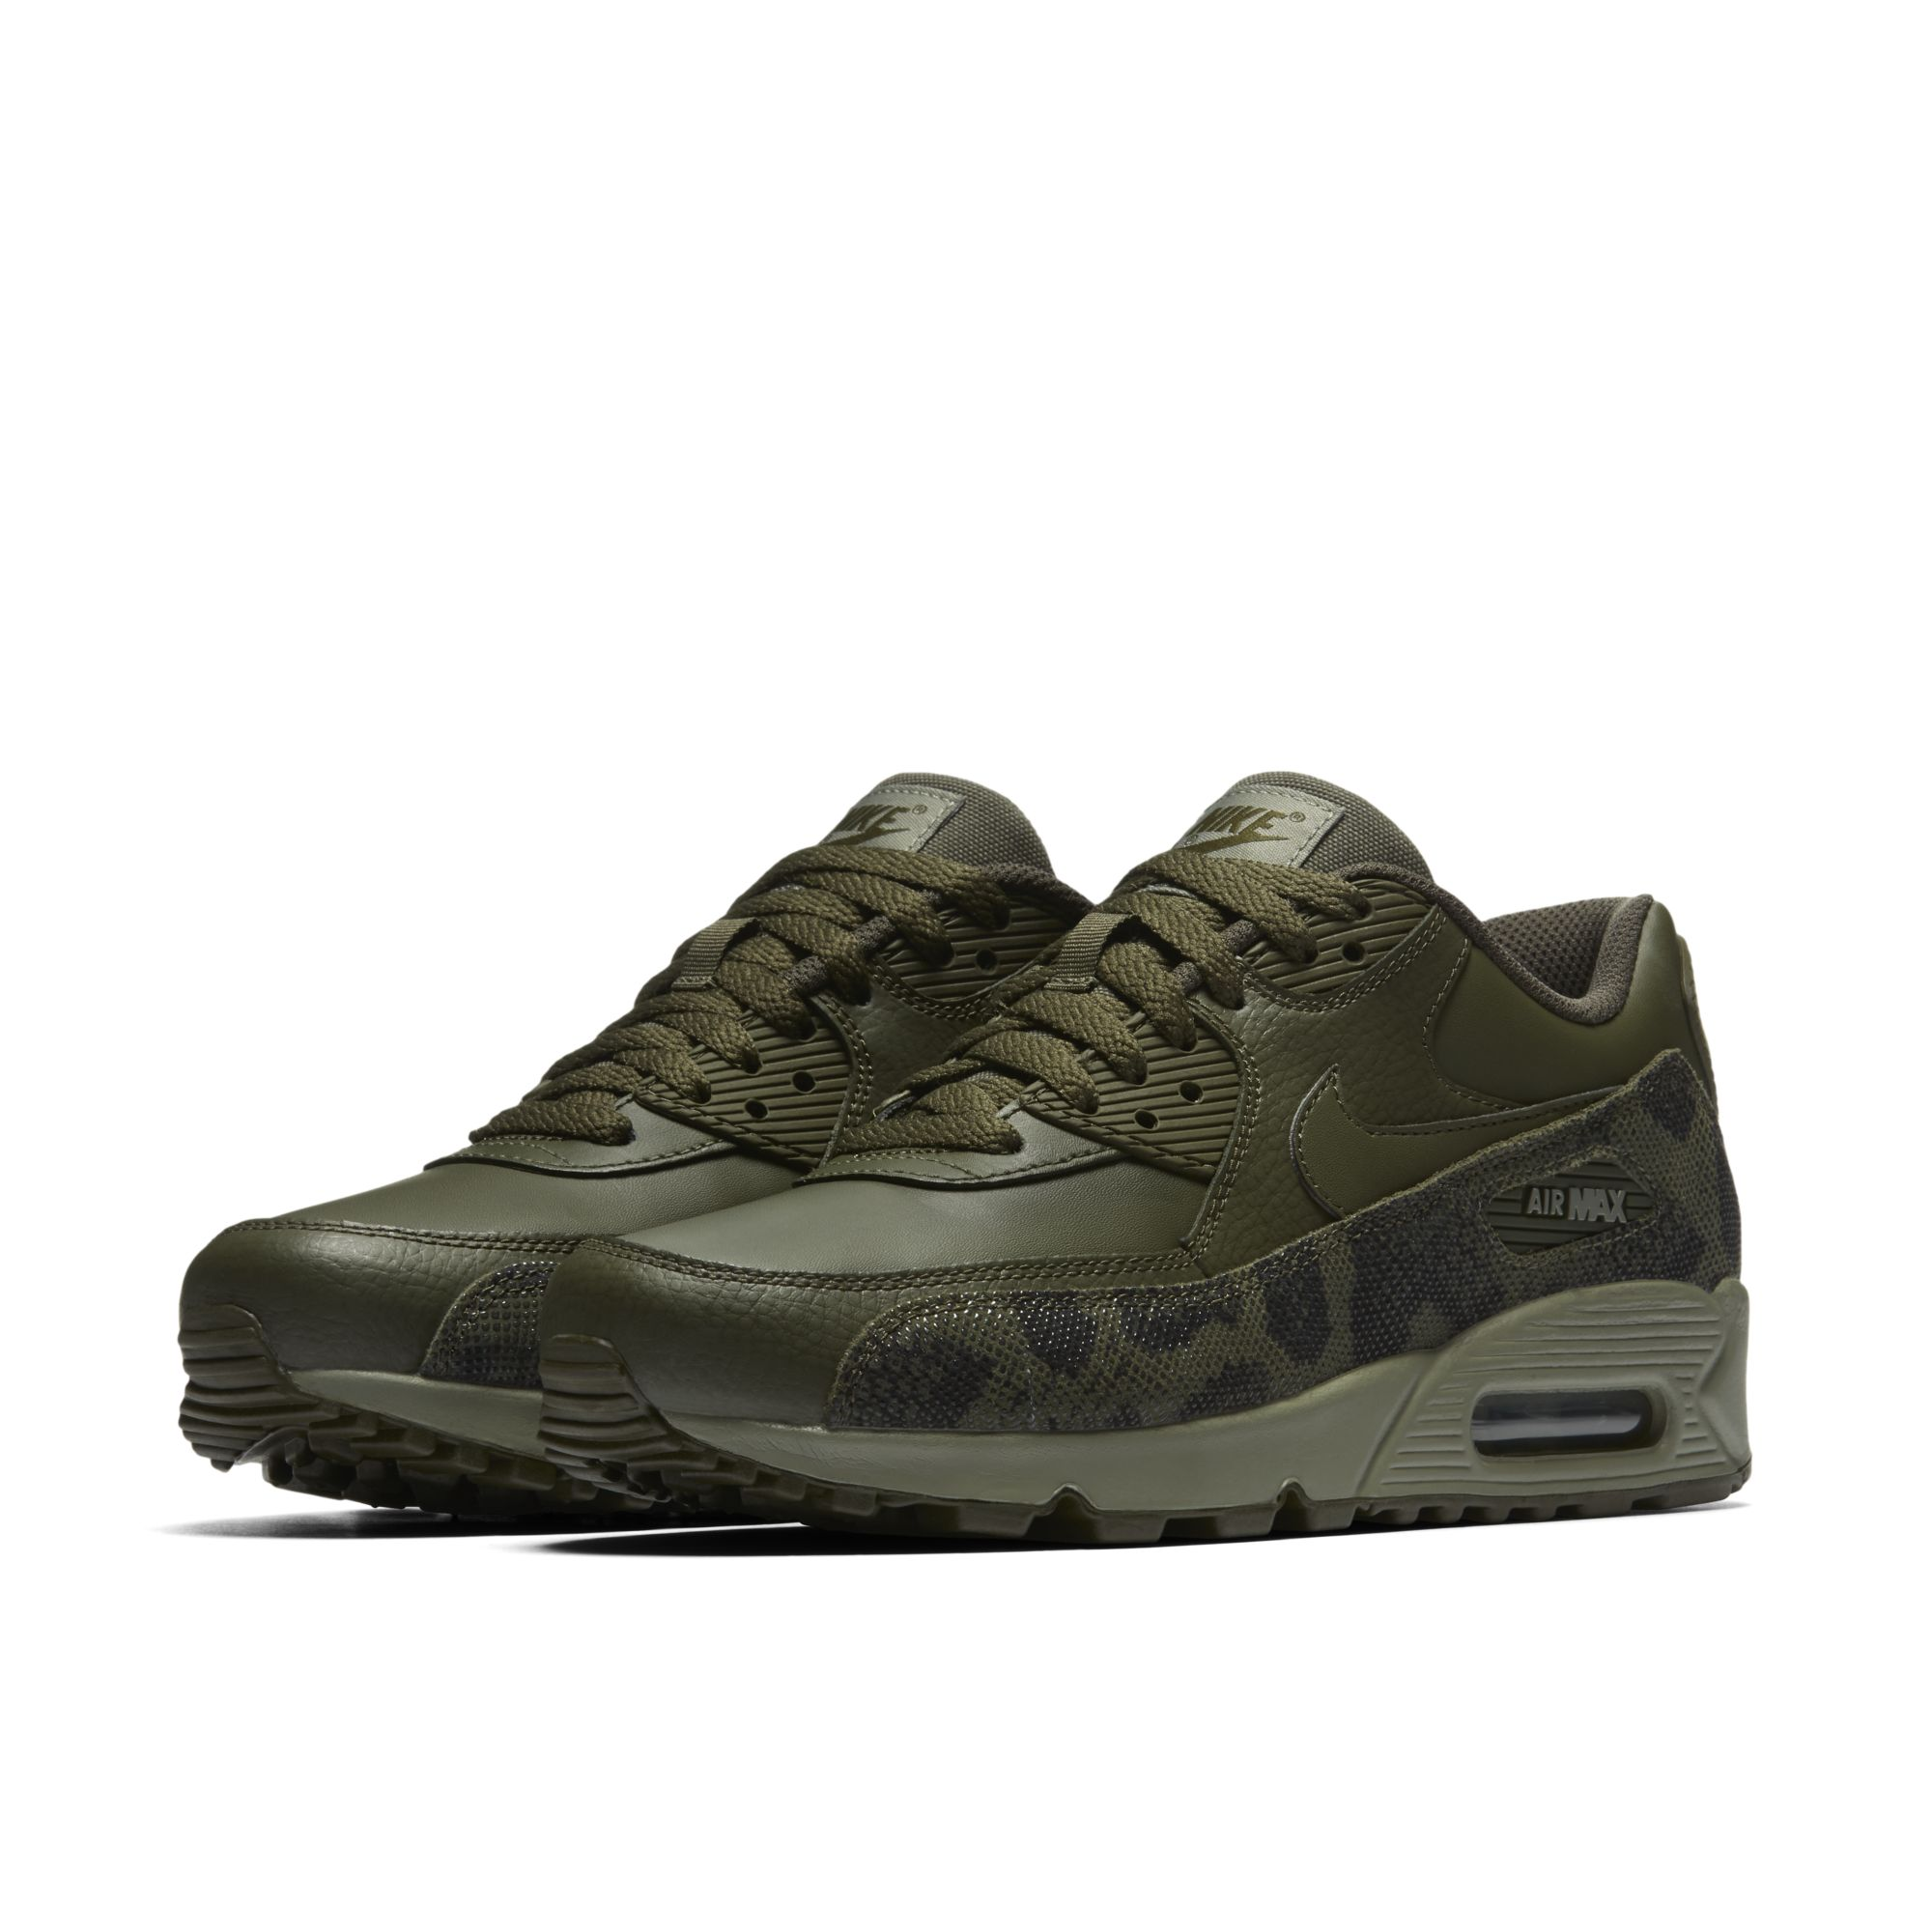 Nike Air Max 90 Premium Snakeskin Available Now